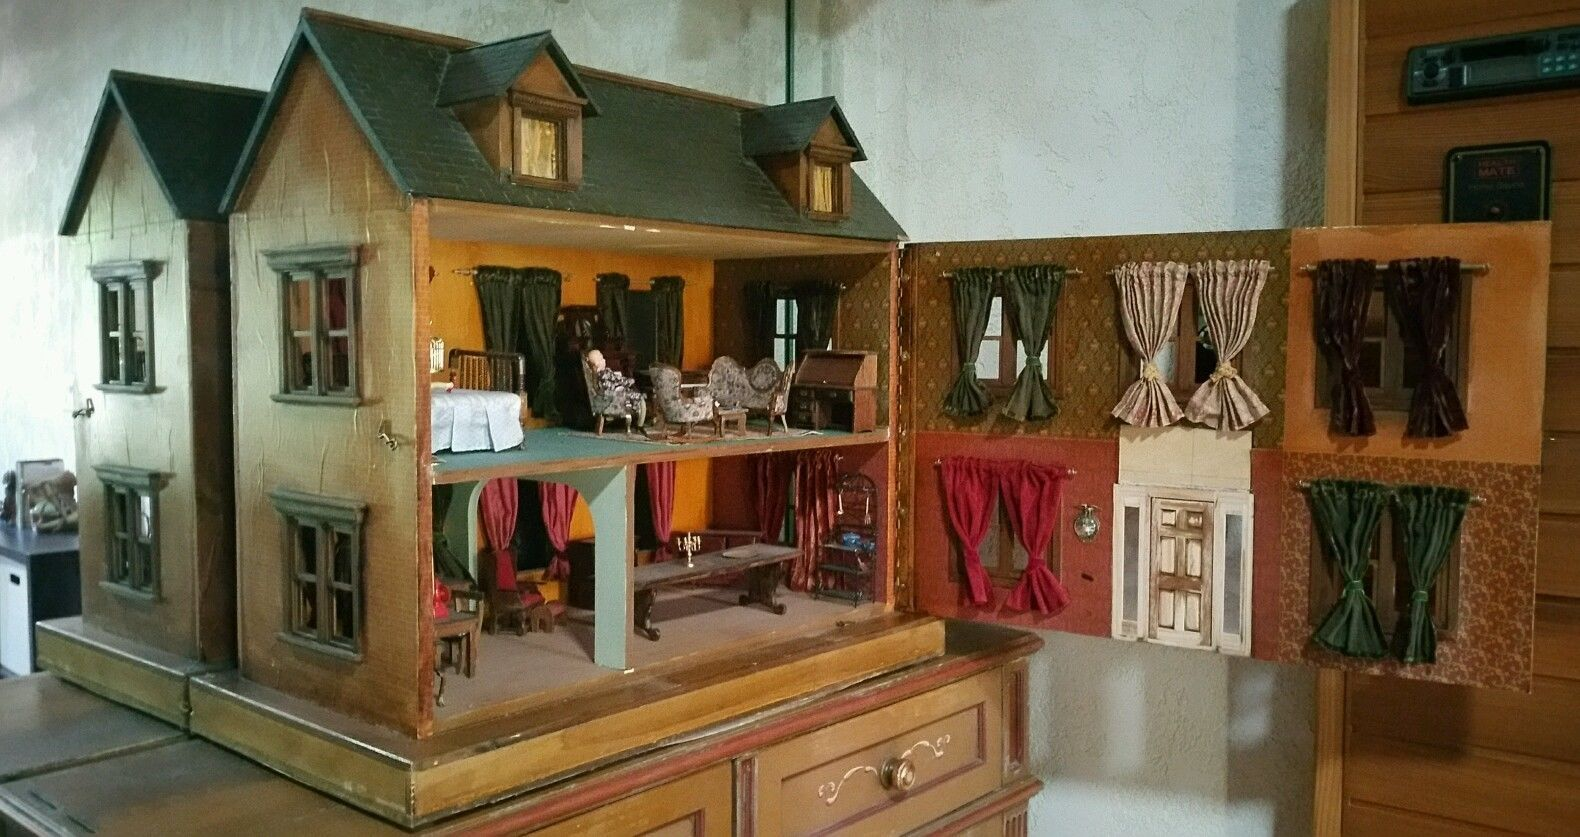 Victorian miniature houses - Screen Used Original Prop Victorian Doll House From The Movie Peter Pan